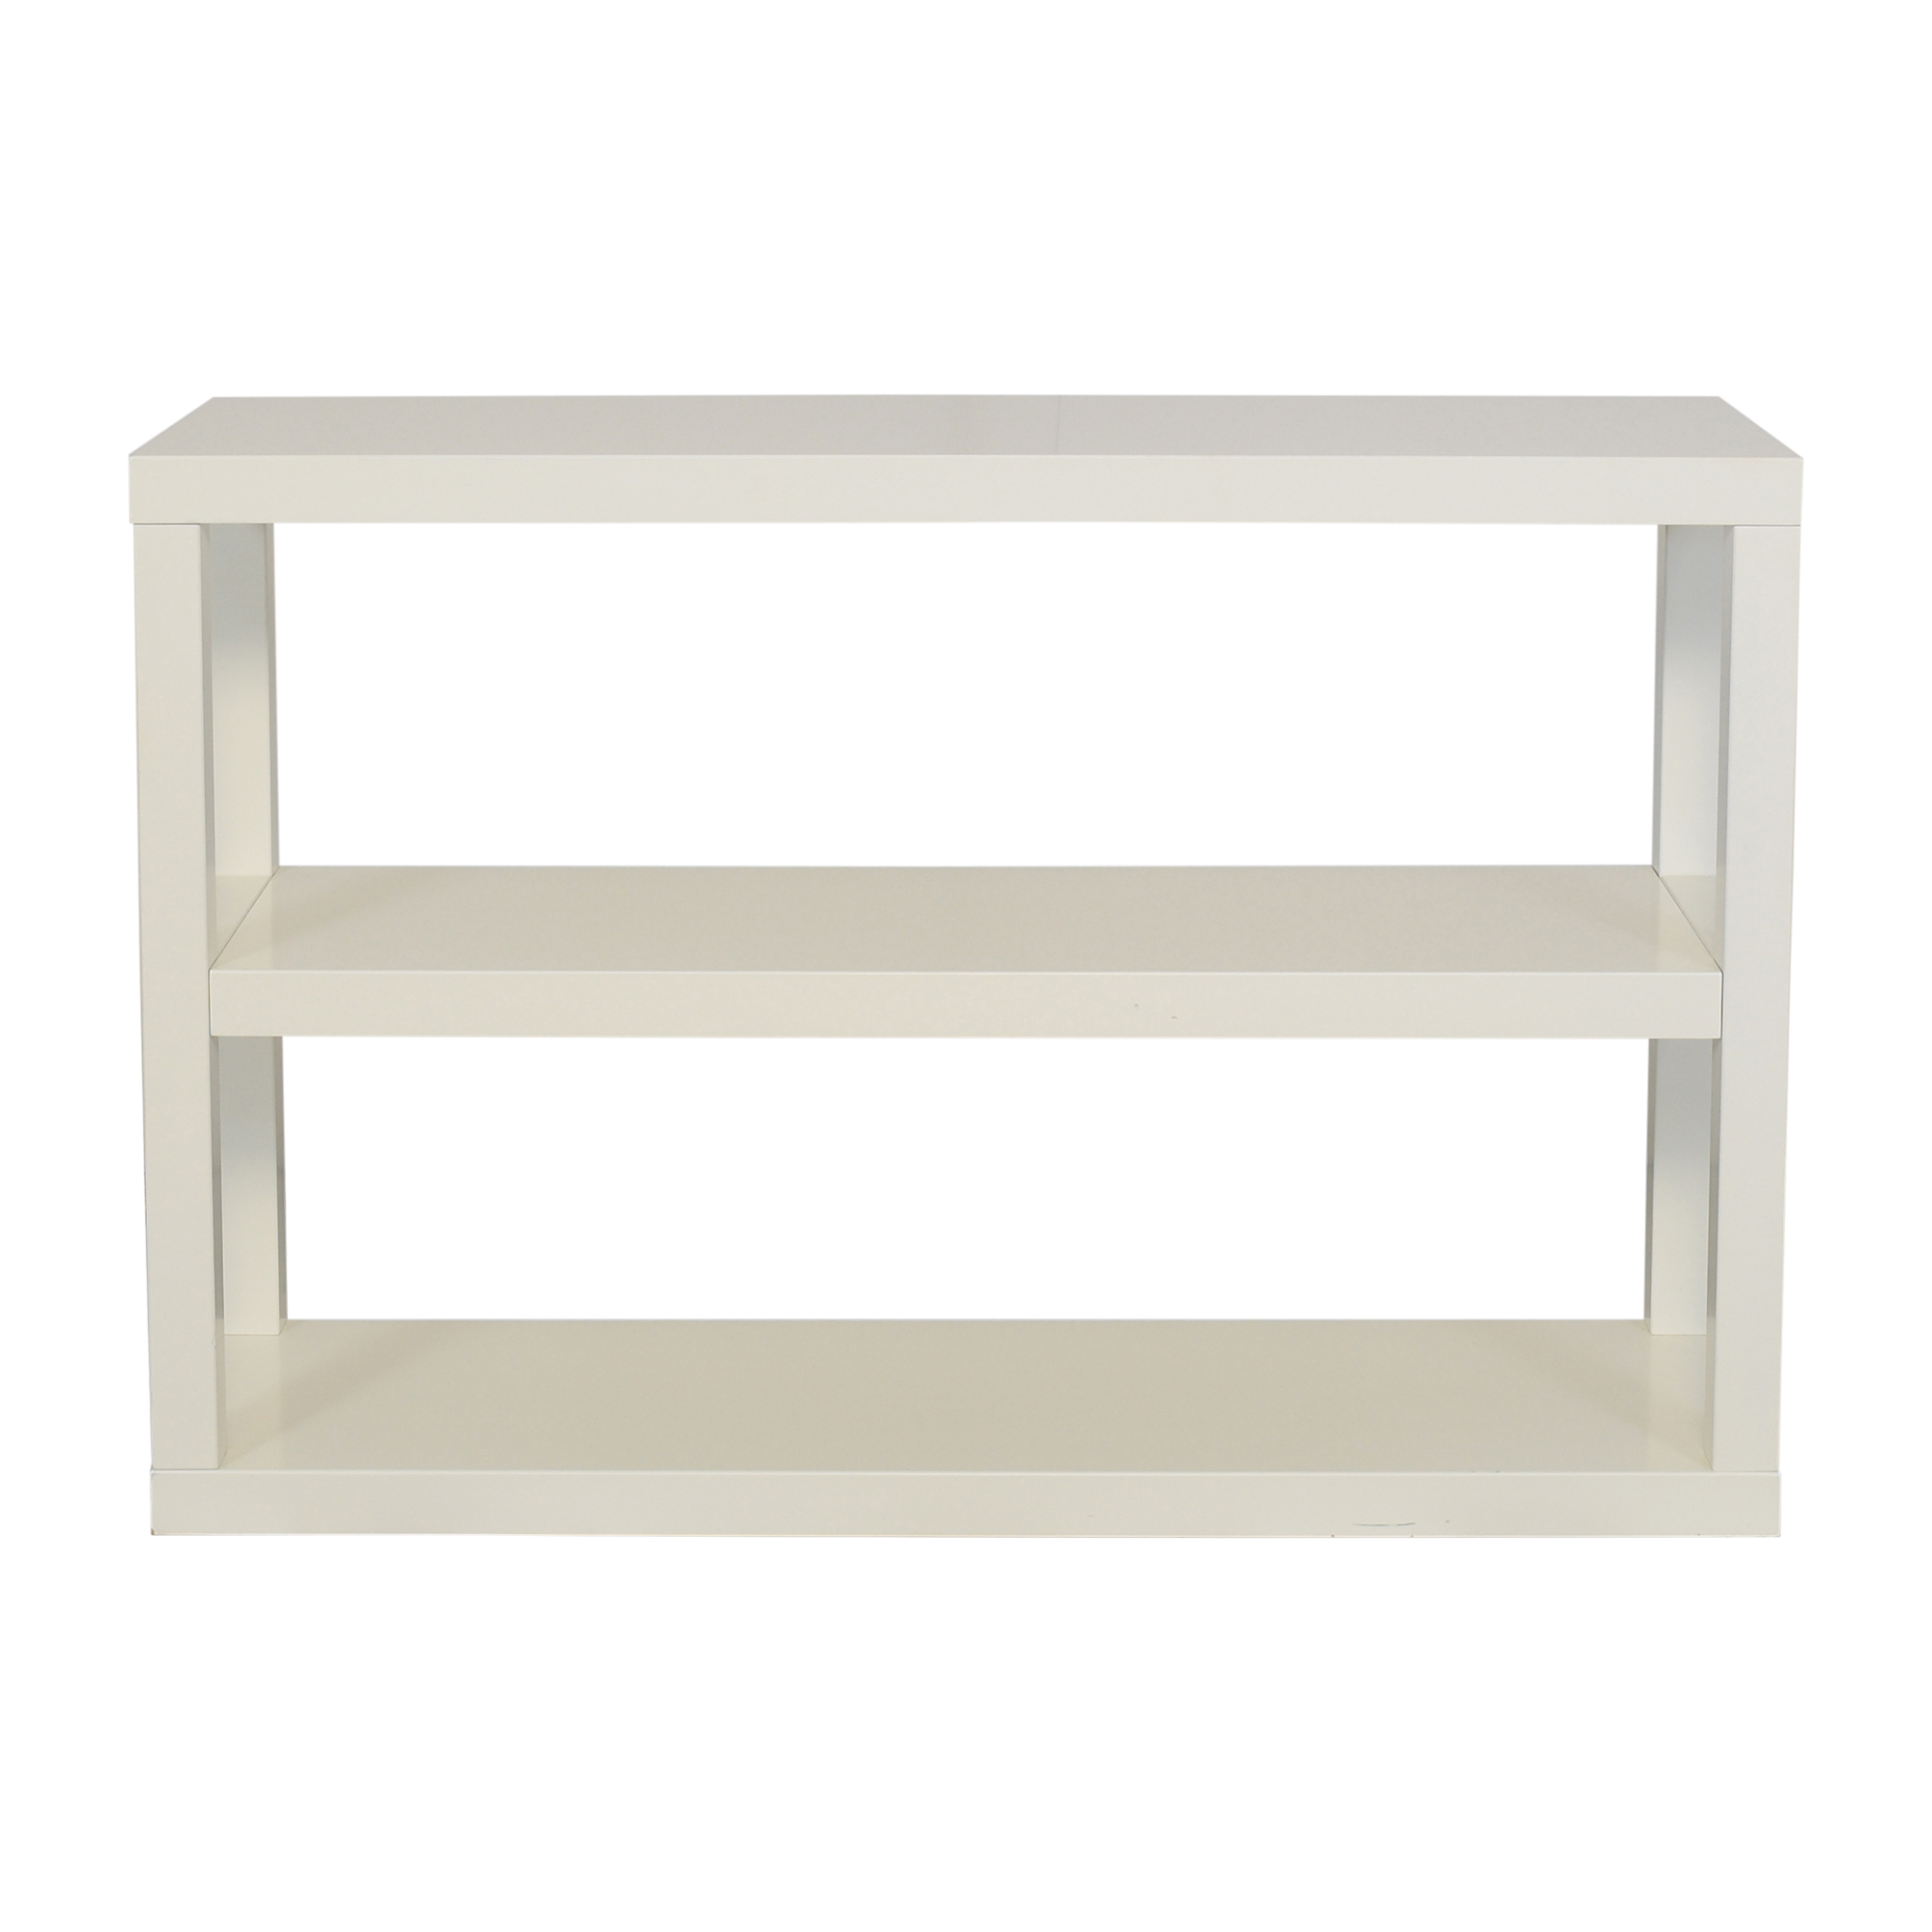 buy West Elm Parsons Low Bookshelf West Elm Bookcases & Shelving